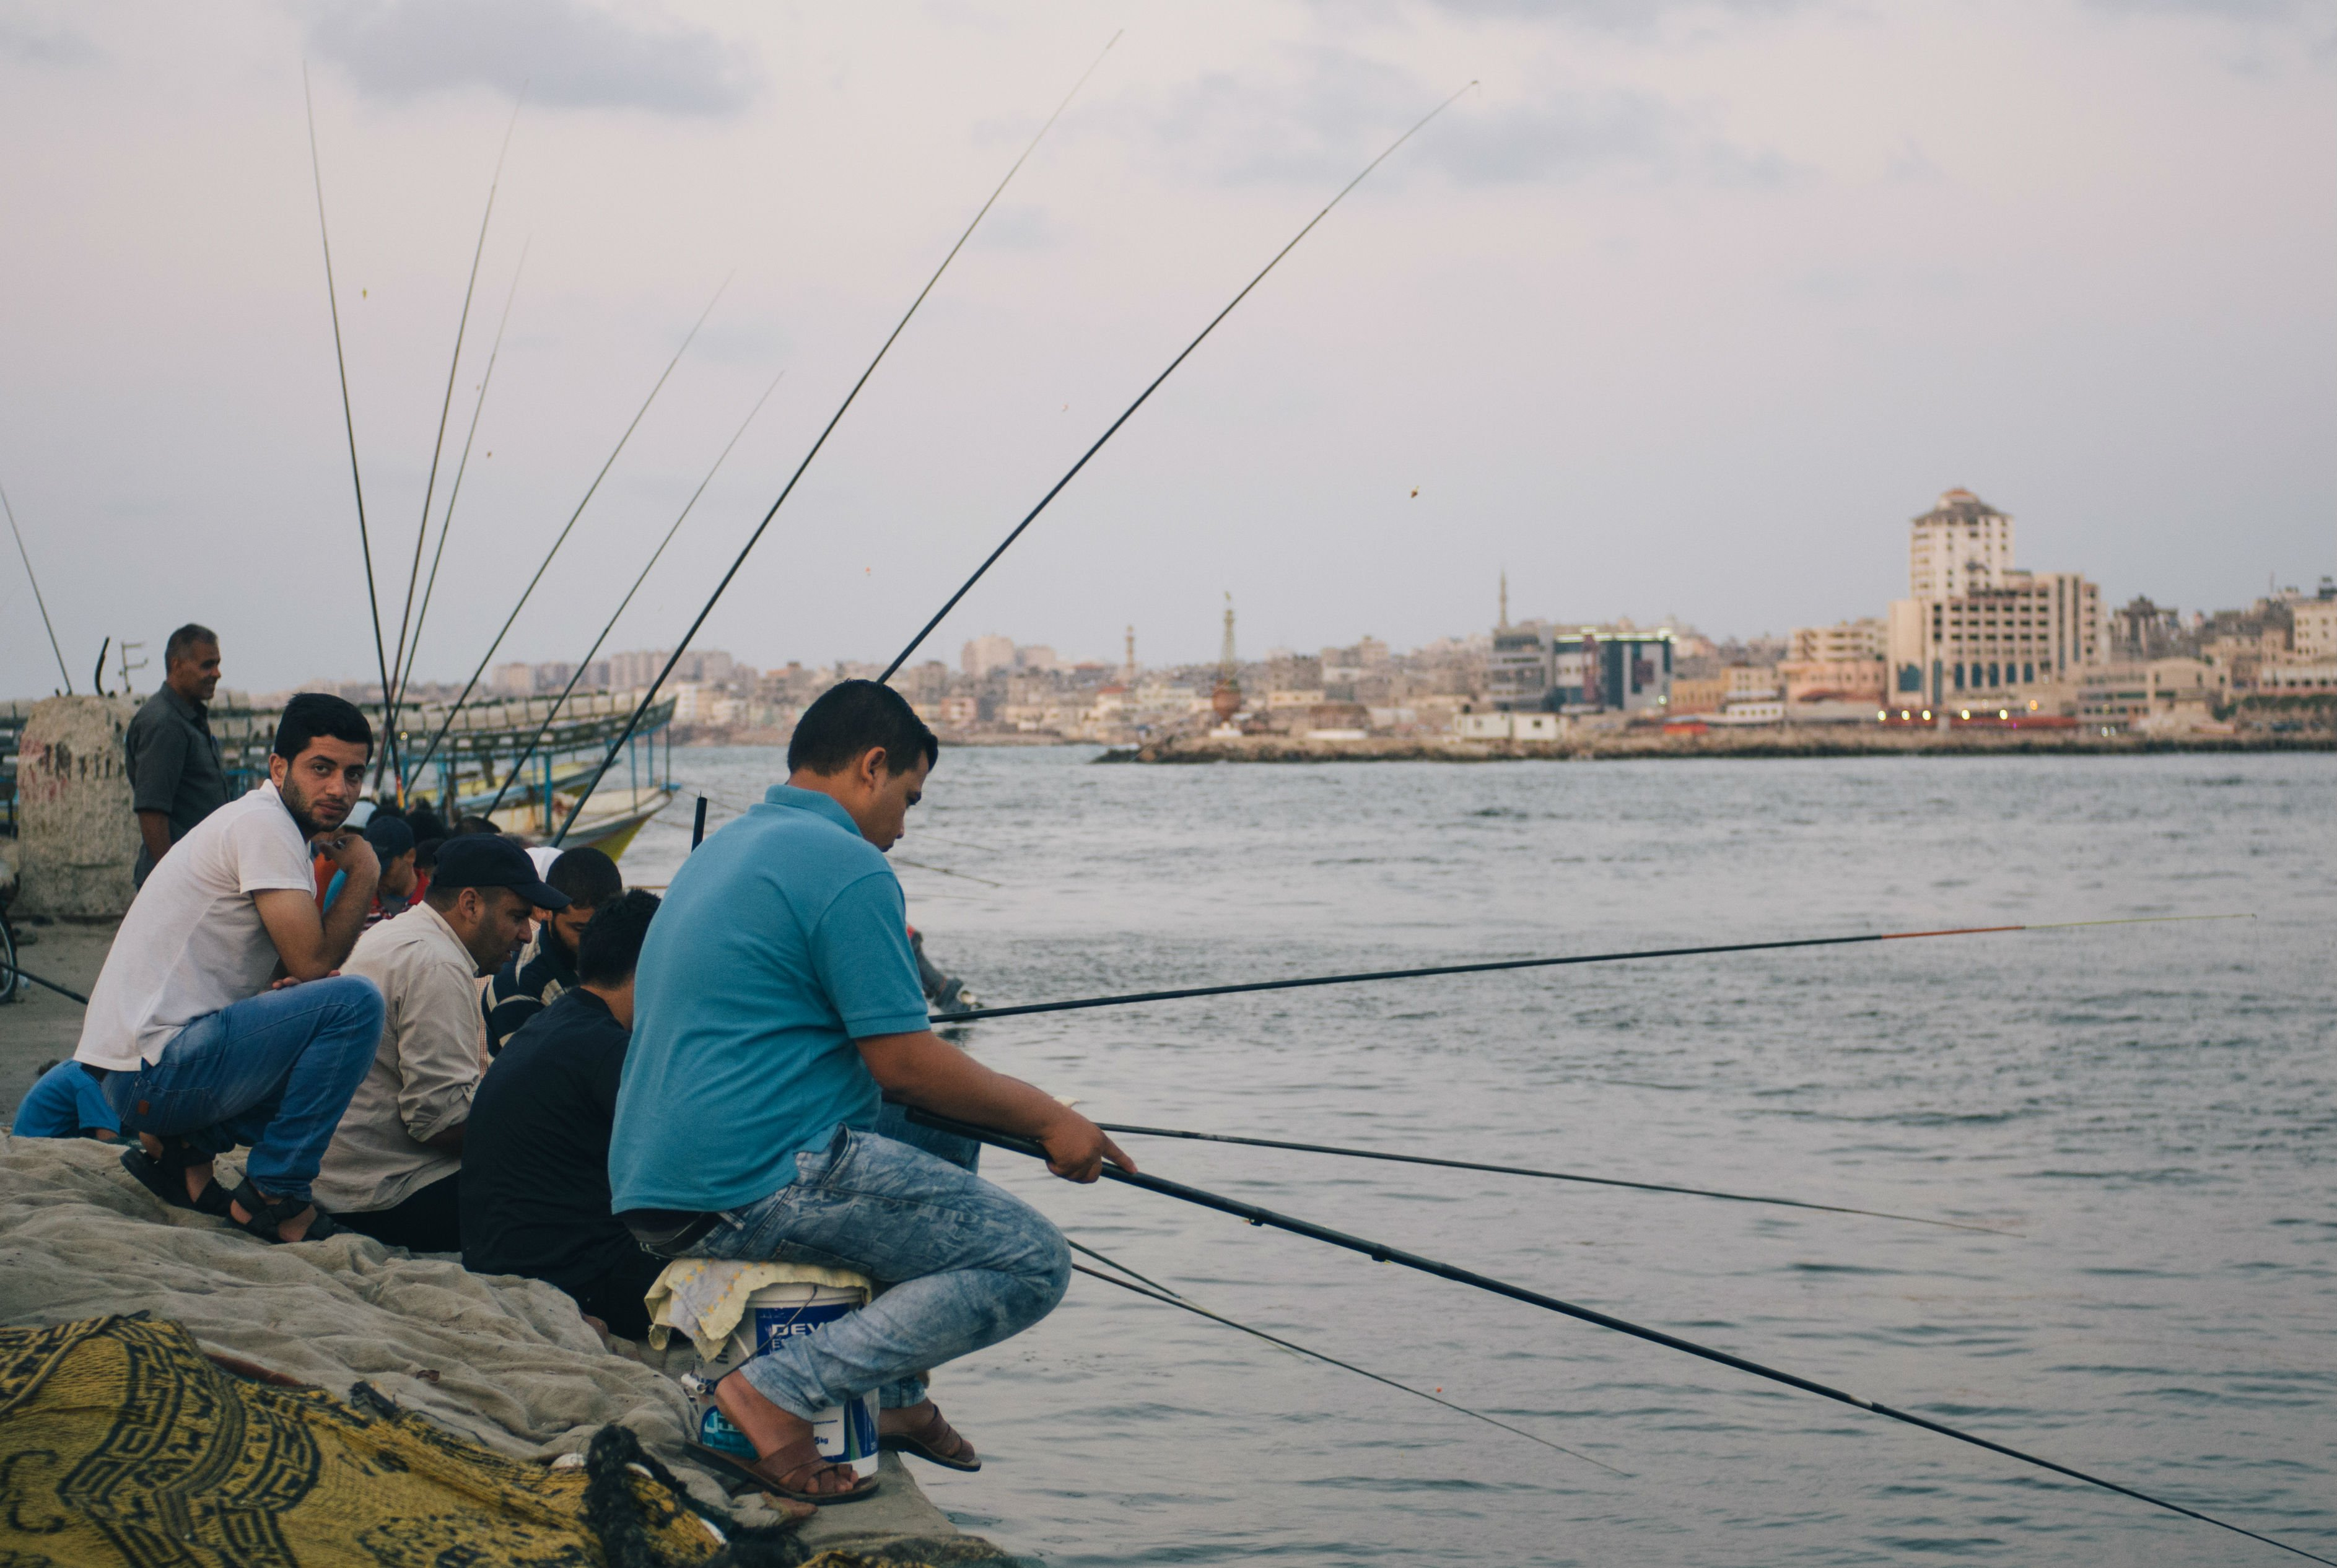 Palestinian men sit together at Gaza's port when they don't have work, which is often for the enclave's many unemployed, drinking coffee as they watch their rods